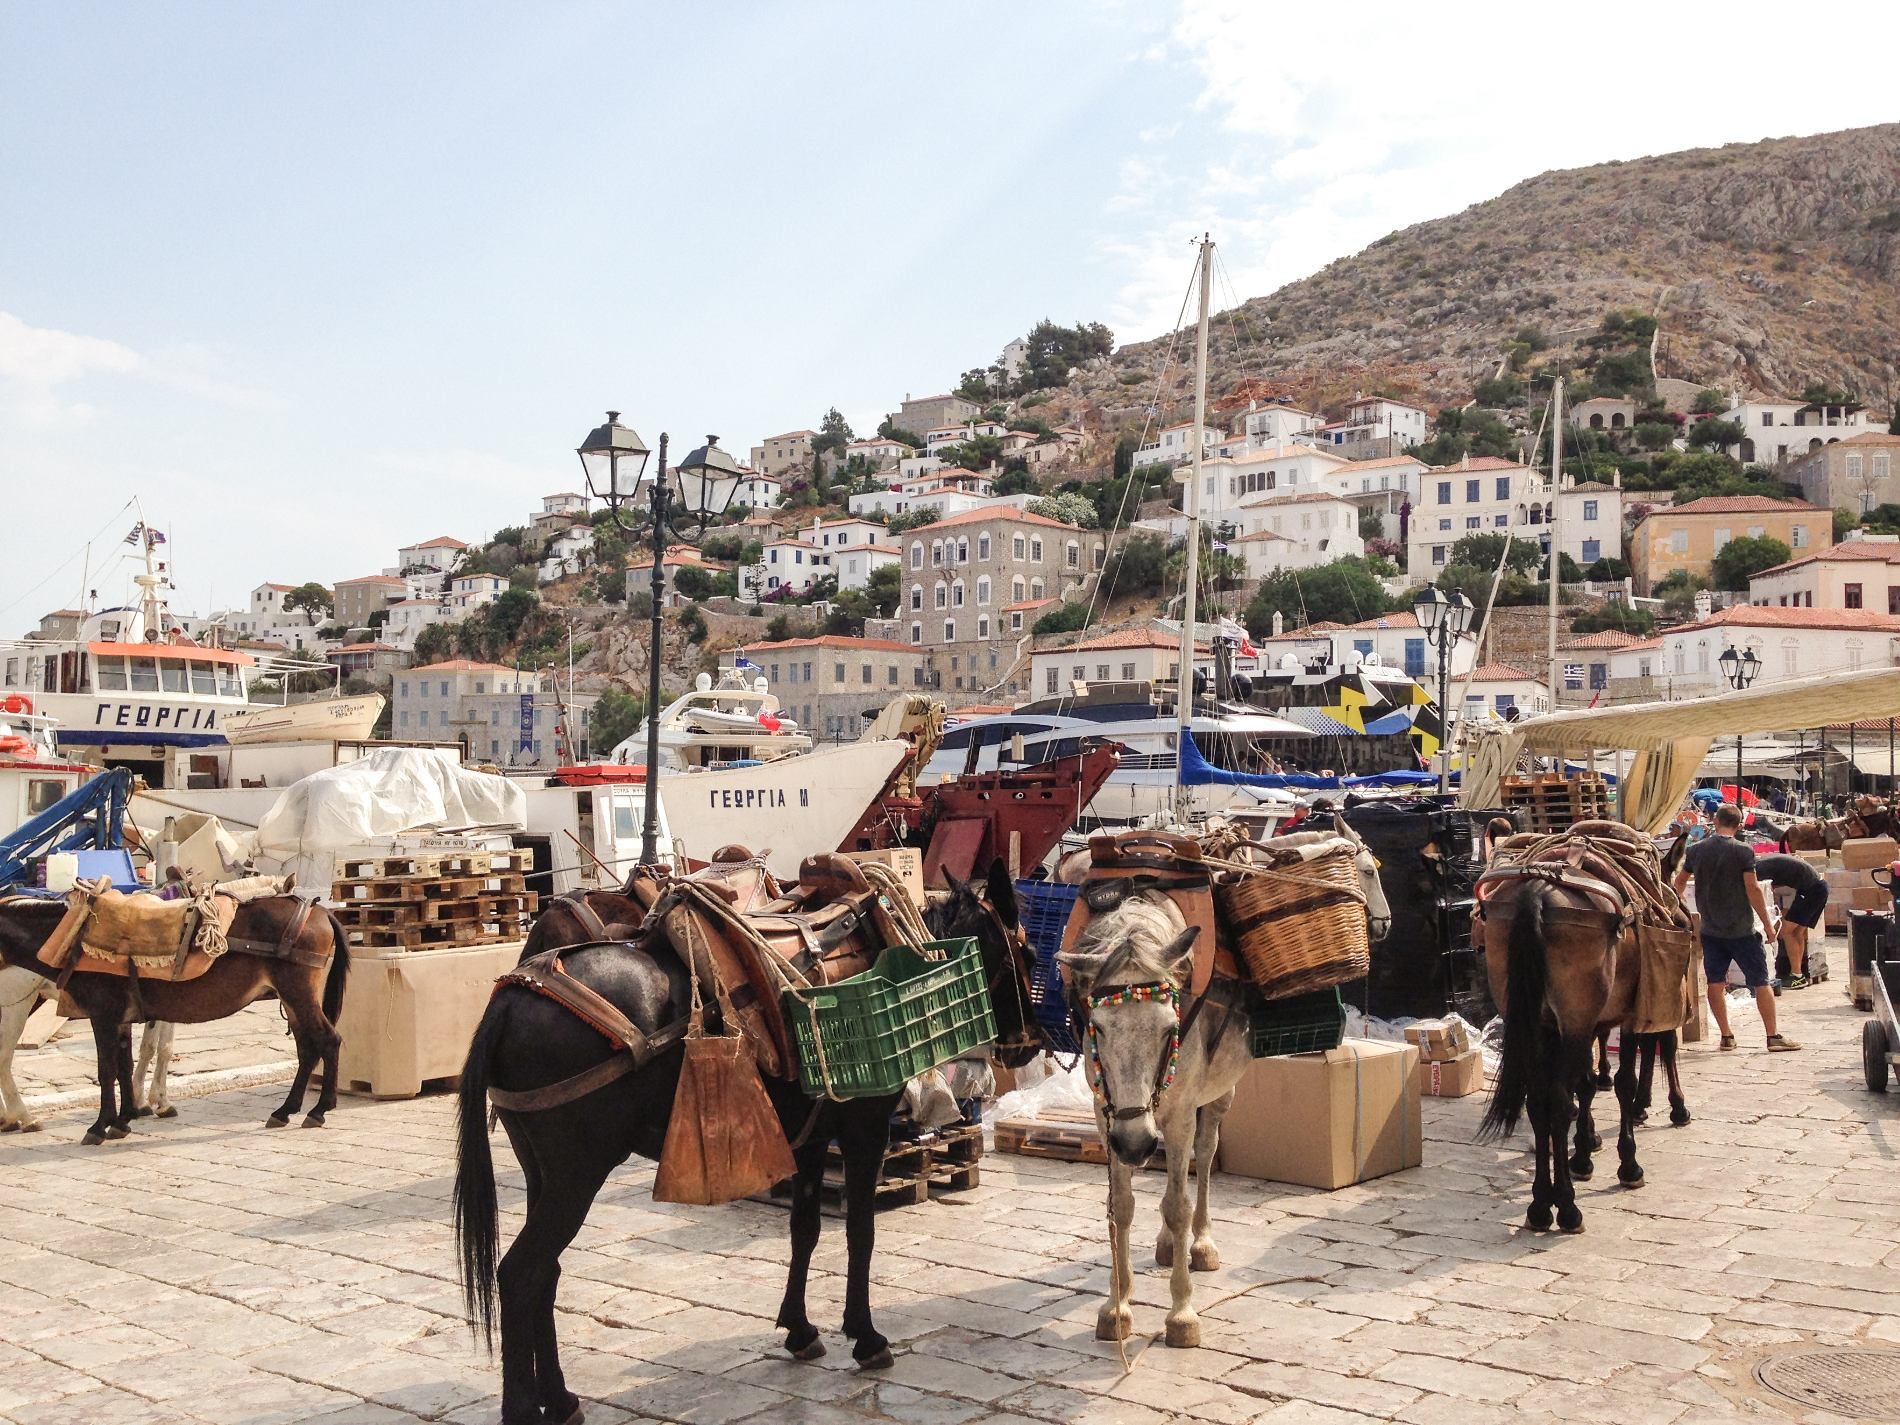 At the cosmopolitan island of Hydra, donkeys are the main means of transport. Source: Makenna May